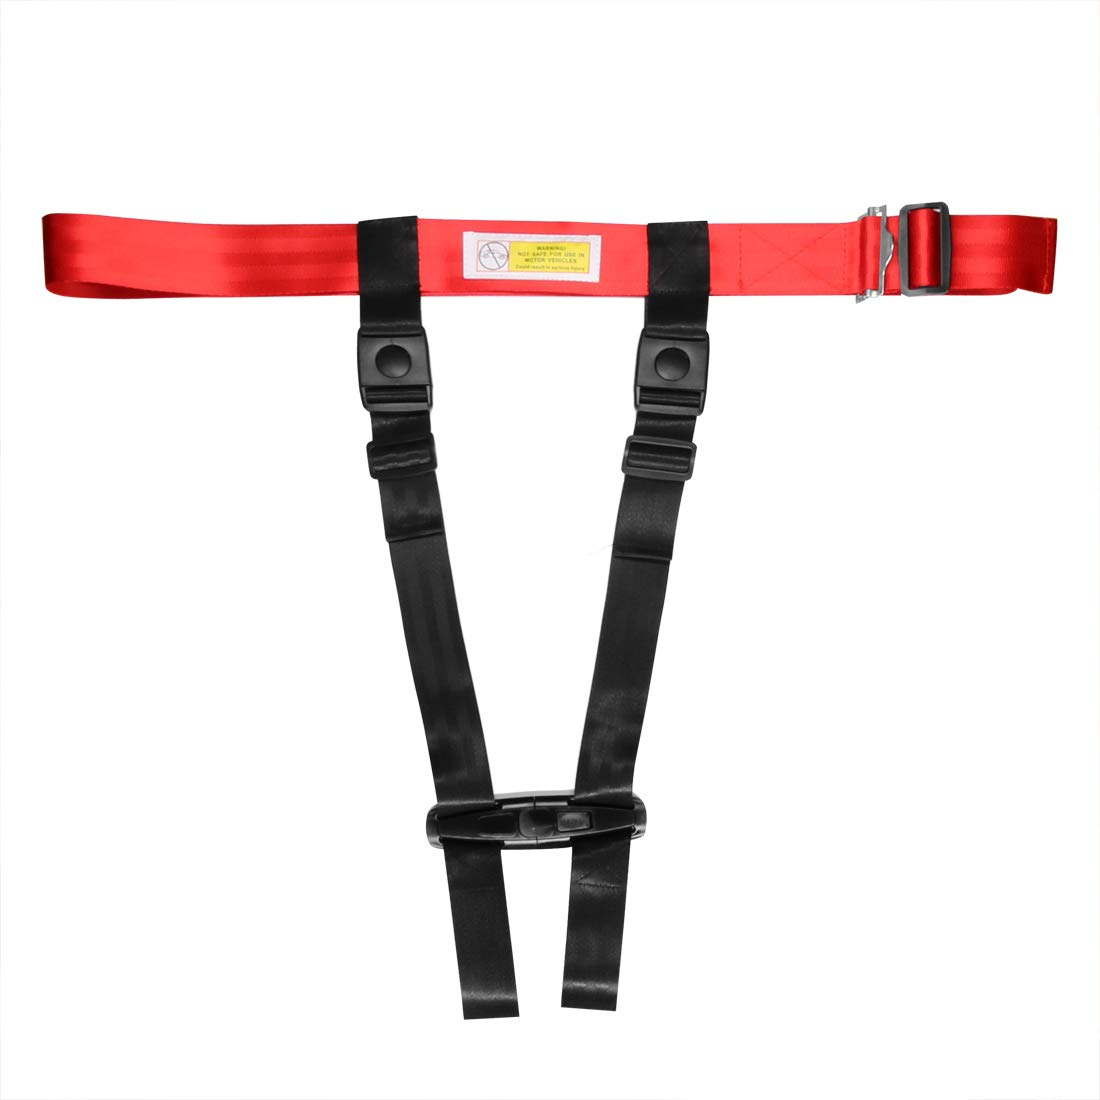 Child Airplane Travel Harness Safety Clip Strap Restraint System for Baby, Toddlers & Kids- for Airplane Travel Use Only by Together-life (Image #8)